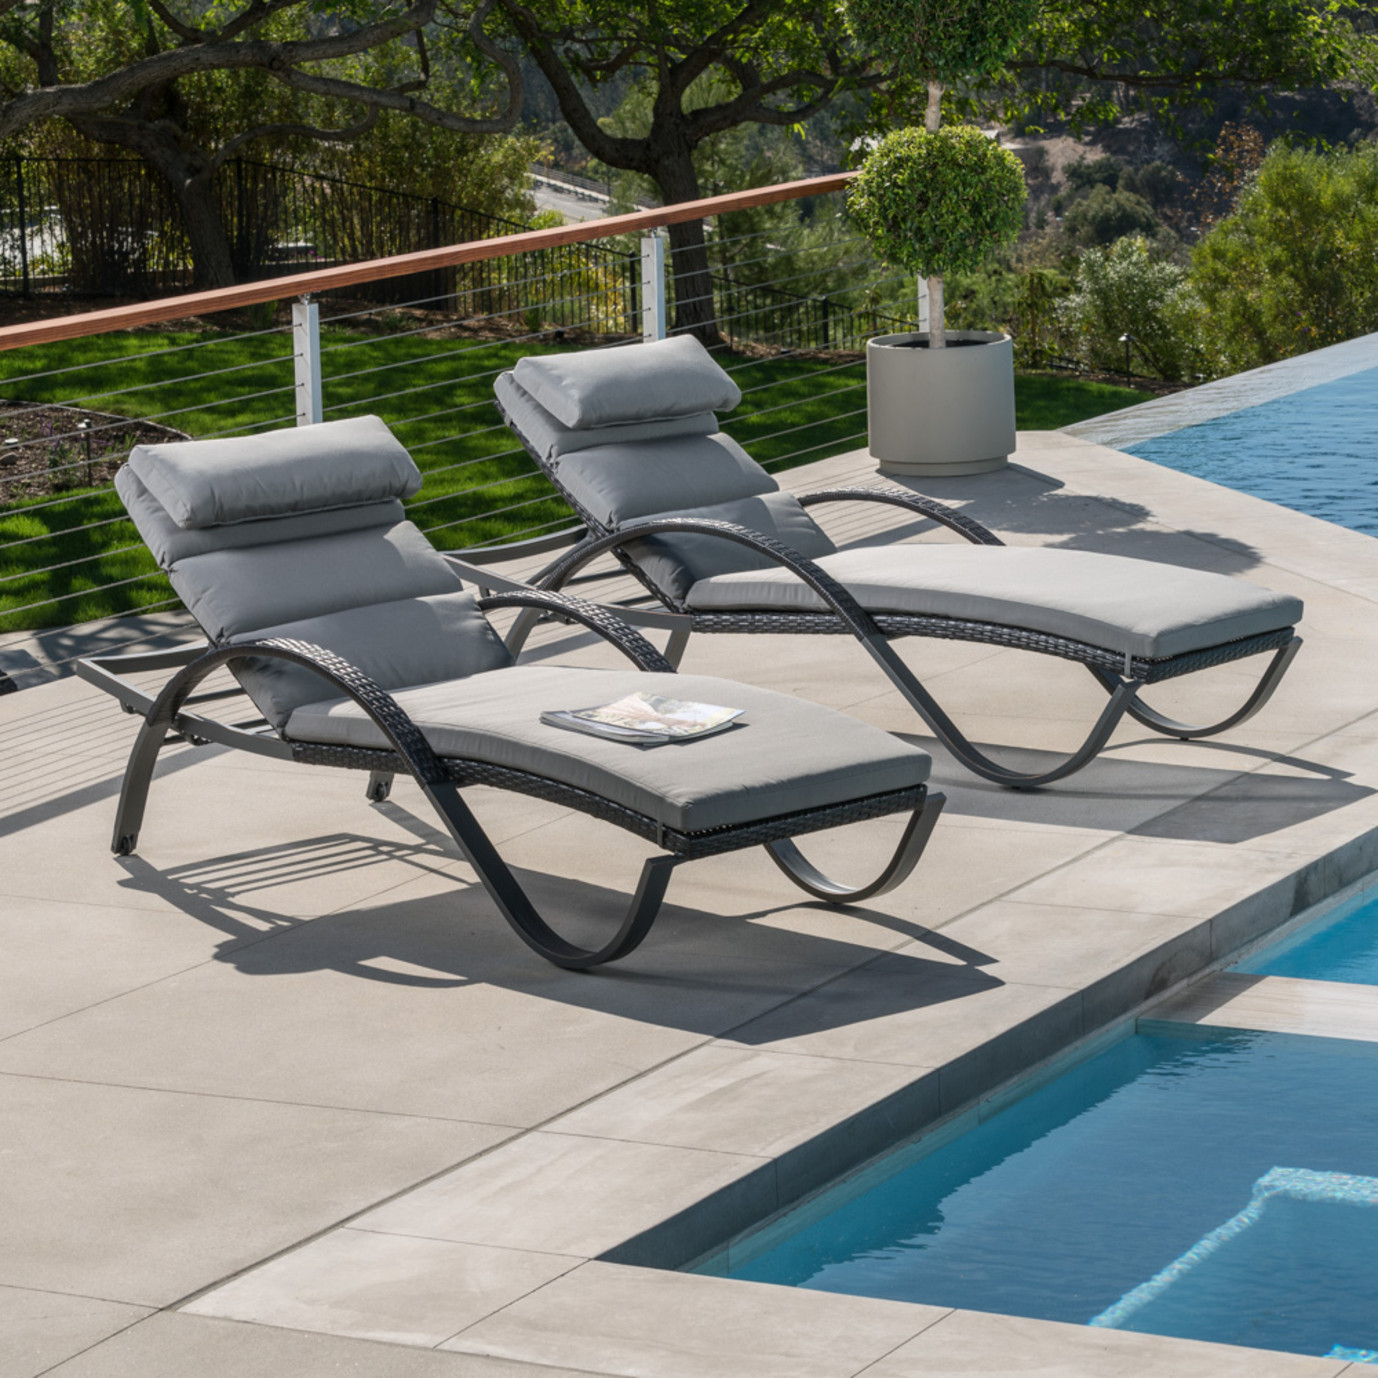 Deco™ Chaise Lounges with Cushions - Charcoal Gray